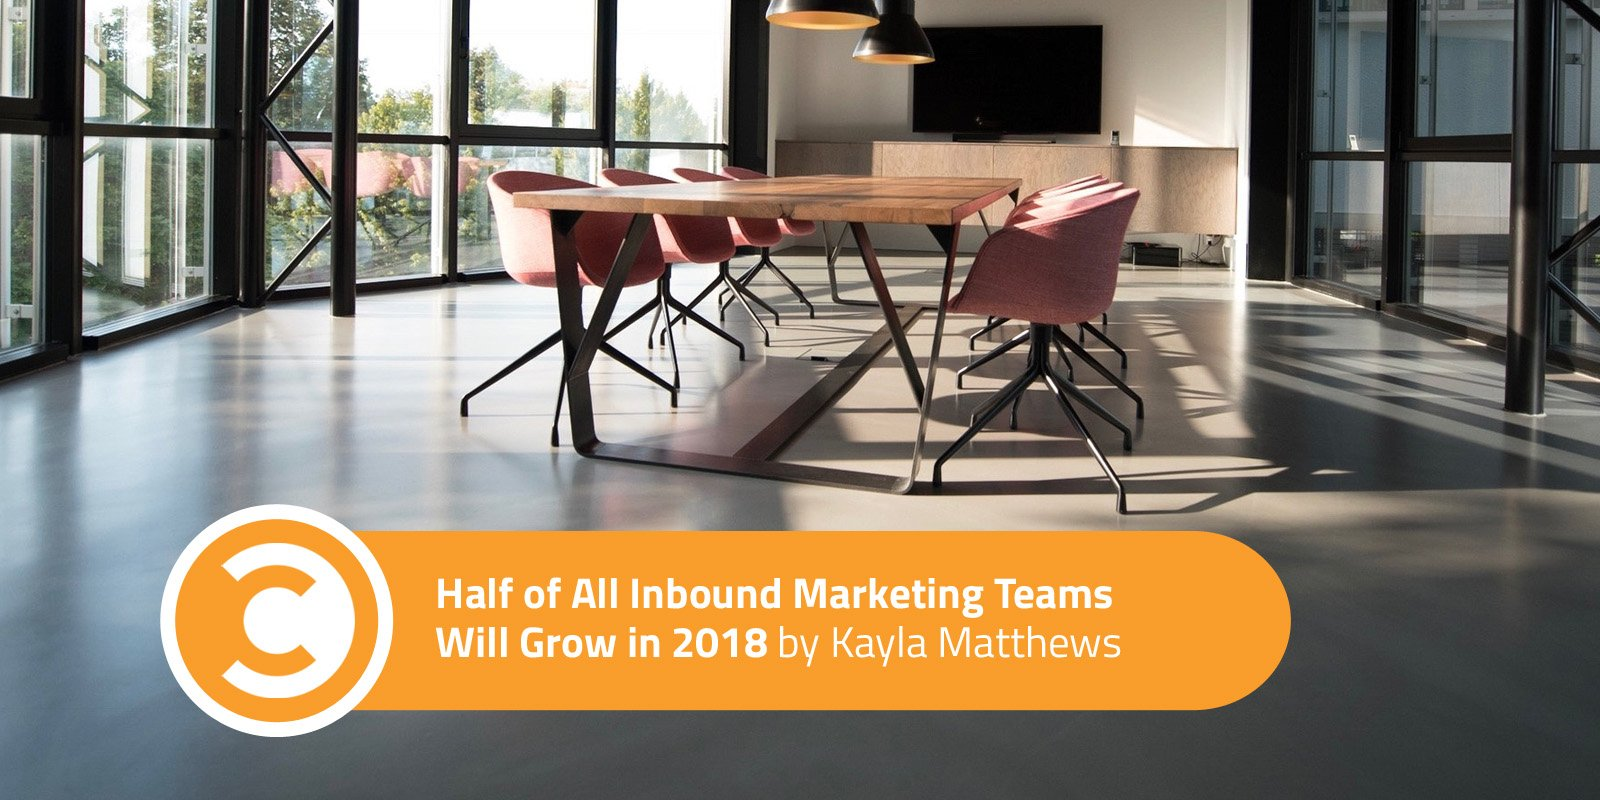 Half of All Inbound Marketing Teams Will Grow in 2018